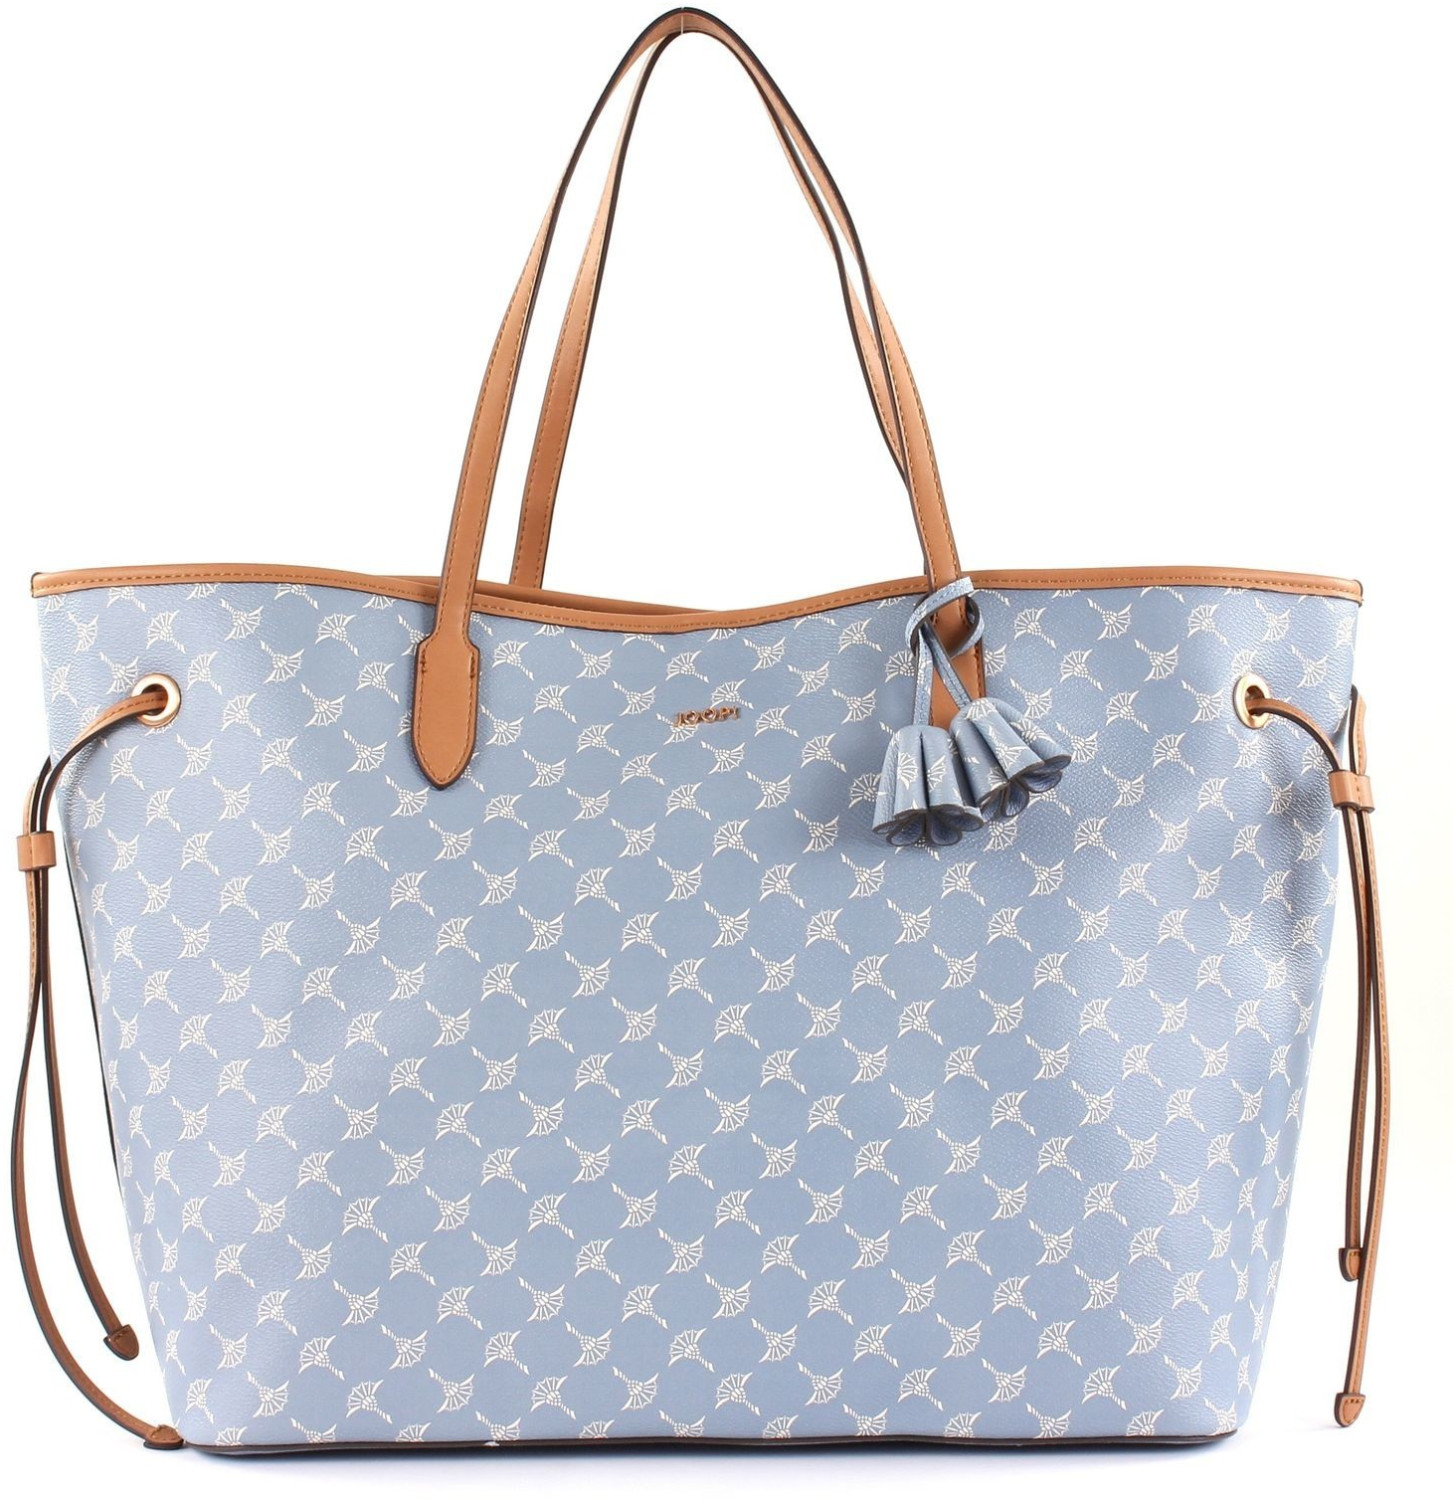 Joop! Cortina Lara Shopper light blue (4140002639)